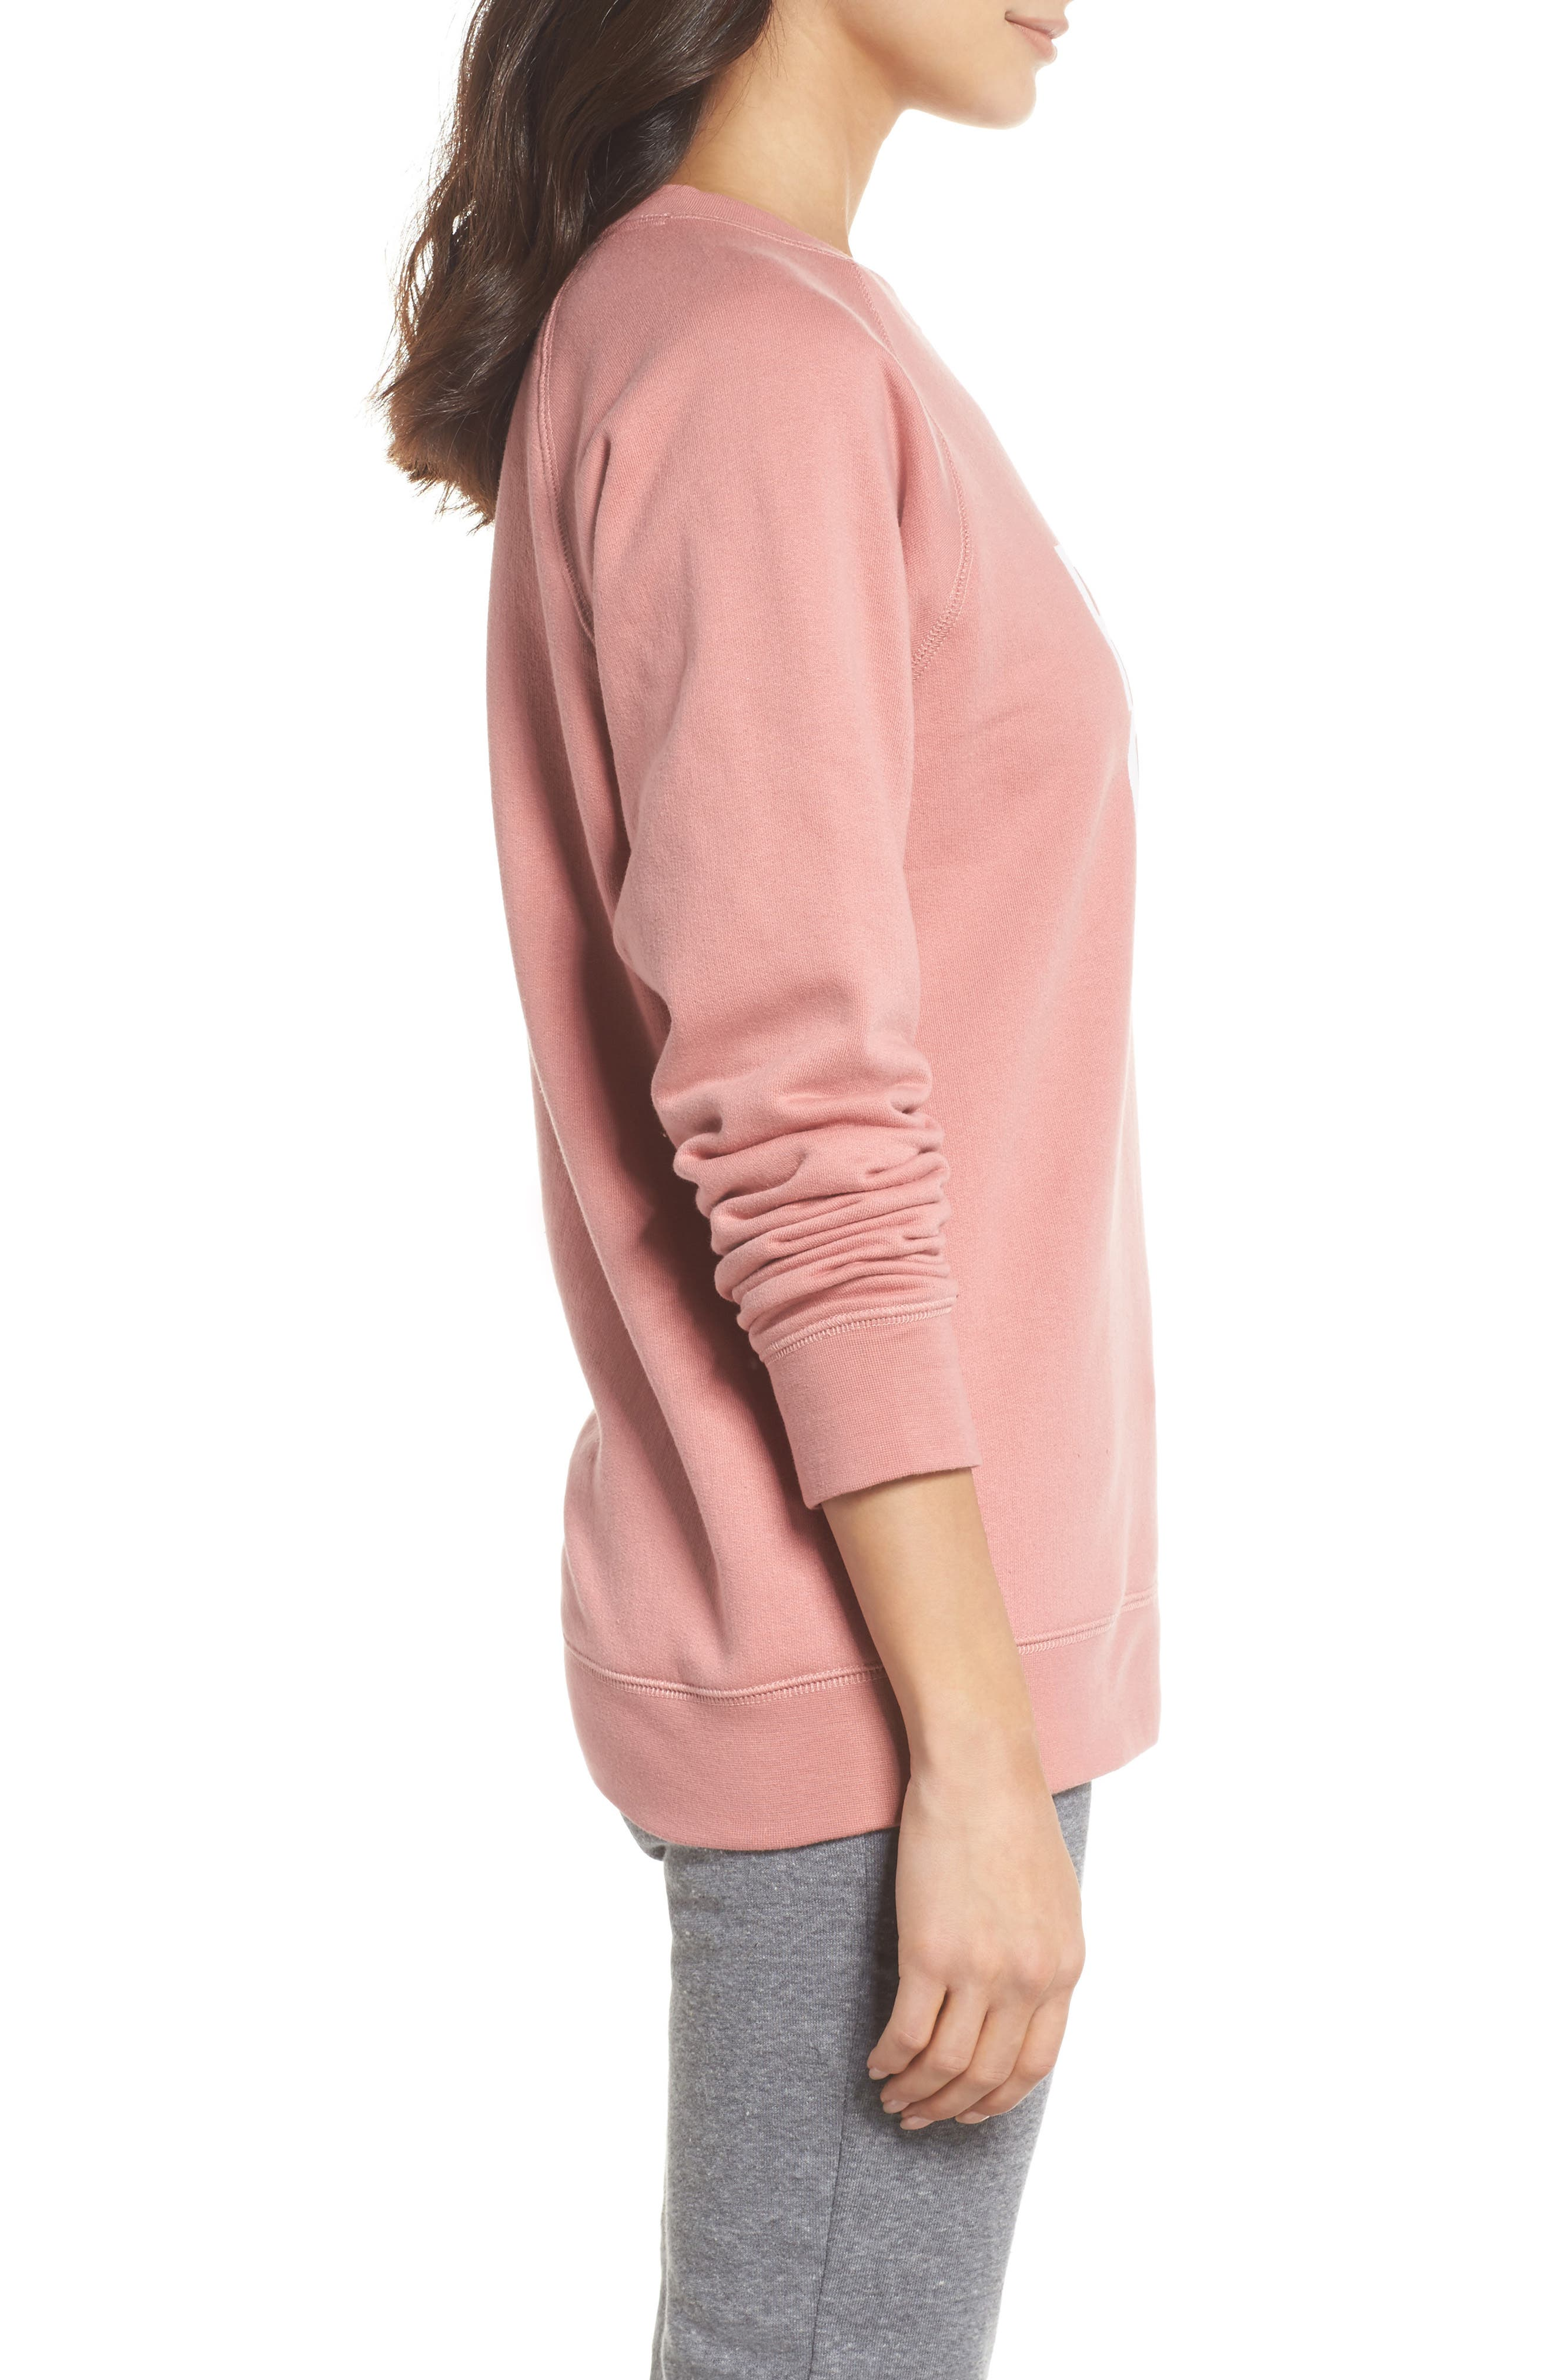 Rosé Okay Sweatshirt,                             Alternate thumbnail 3, color,                             Dusty Rose